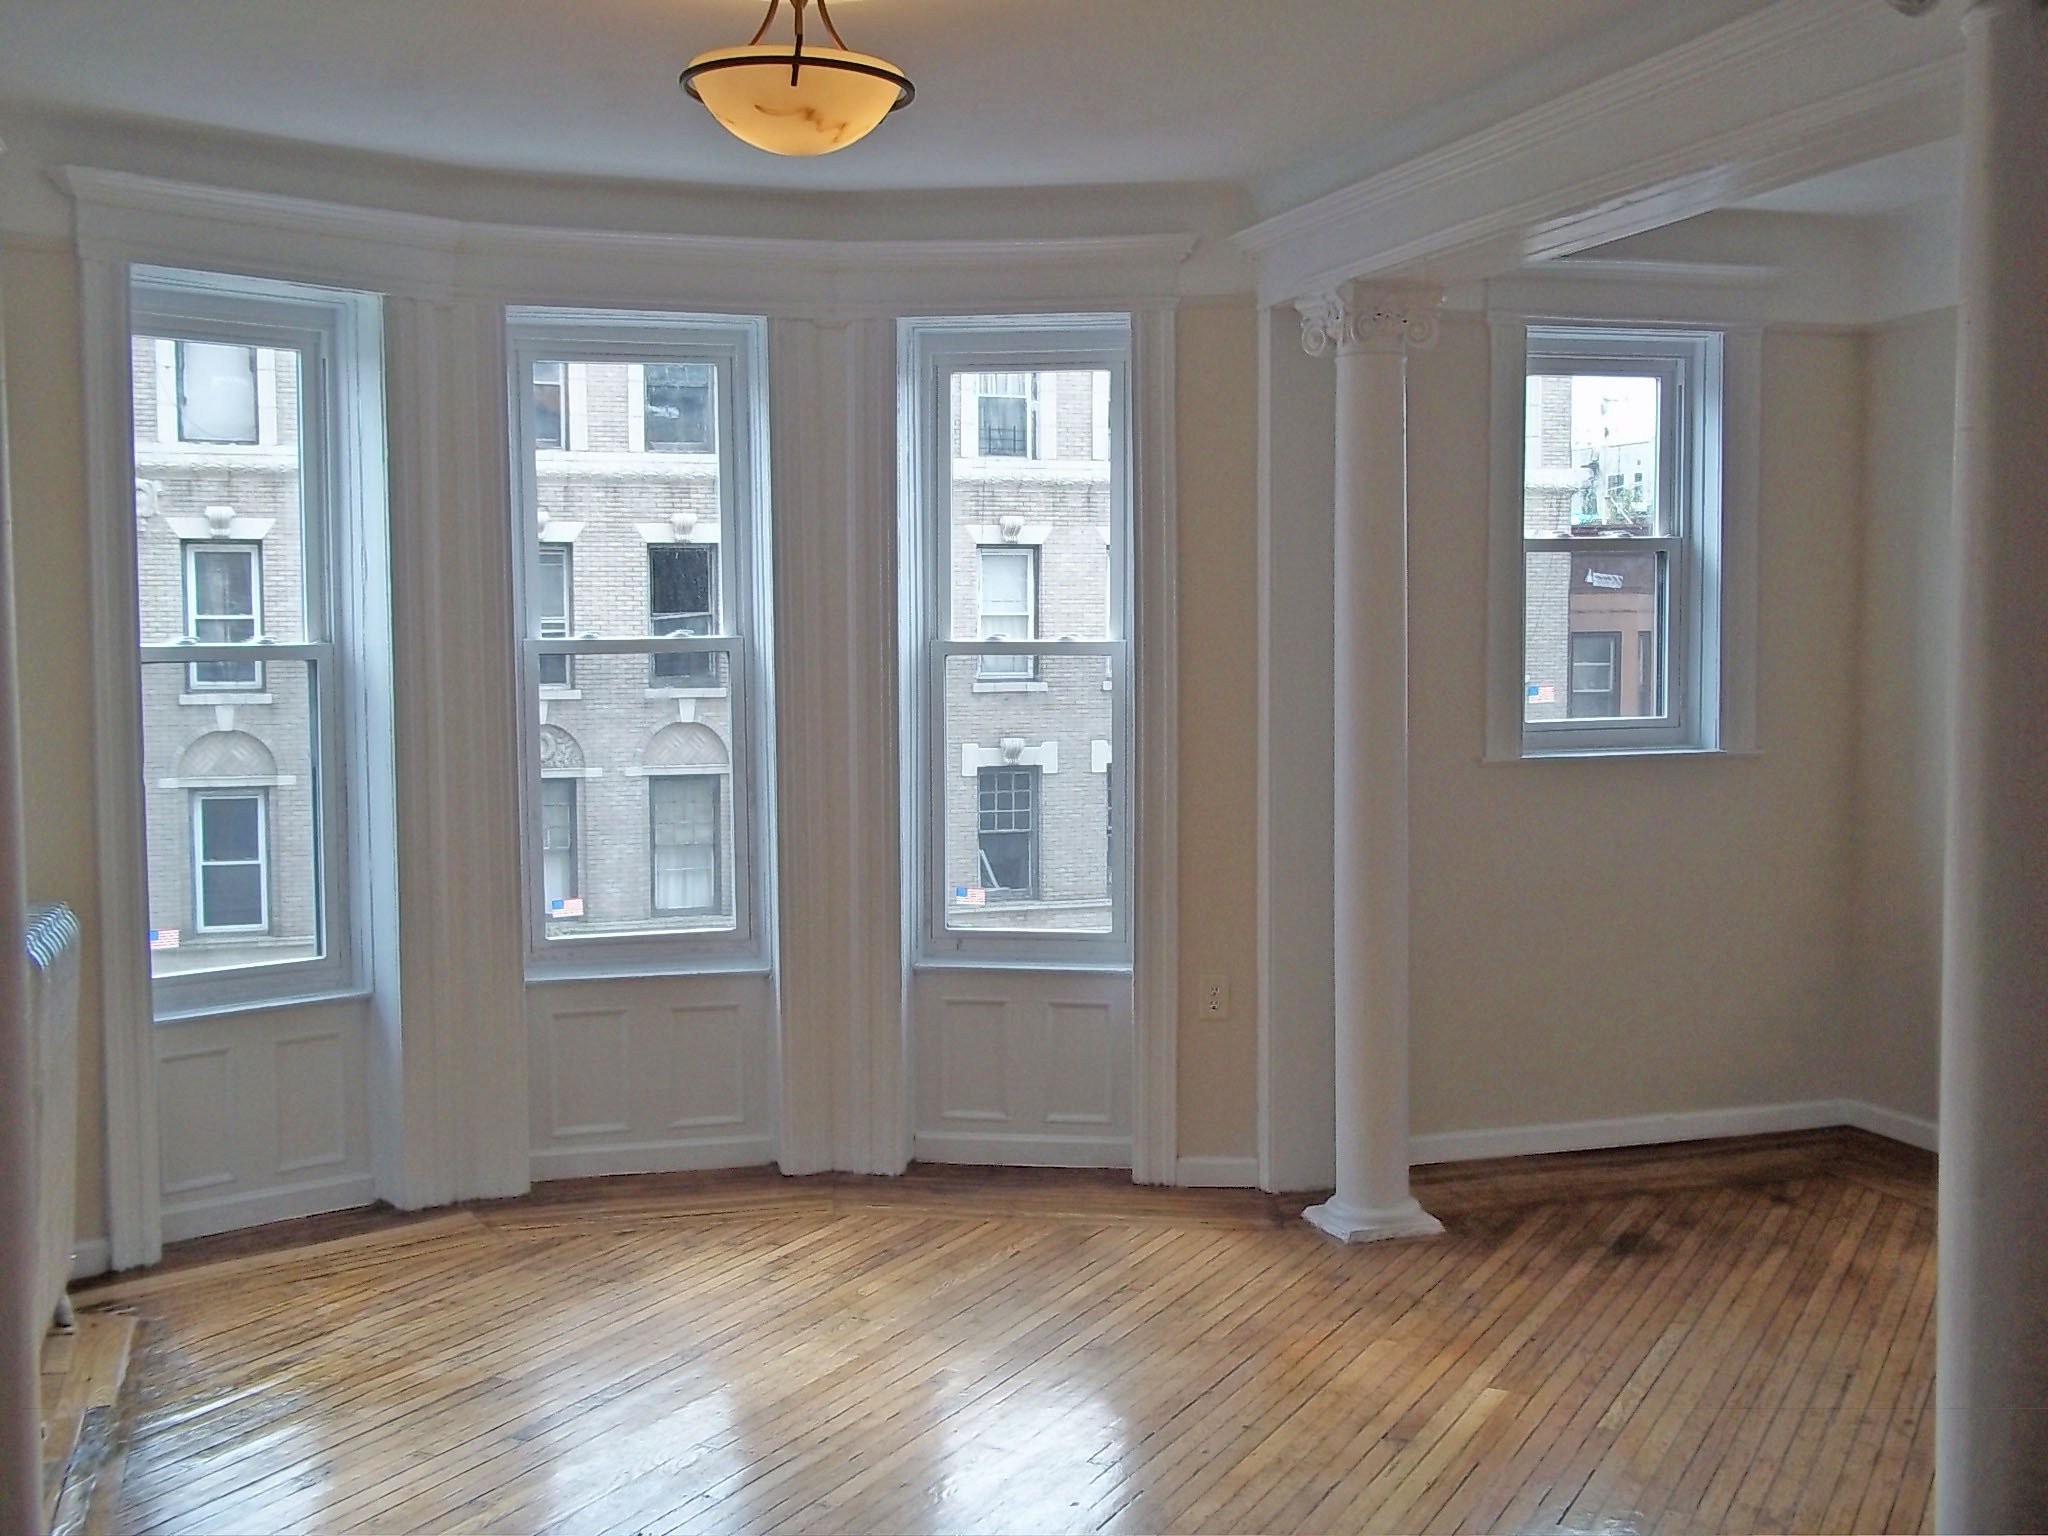 Best 3 Bedroom Apartment Nyc Cheap Studio Apartments In For 500 High End Rentals Luxury Extreme With Pictures